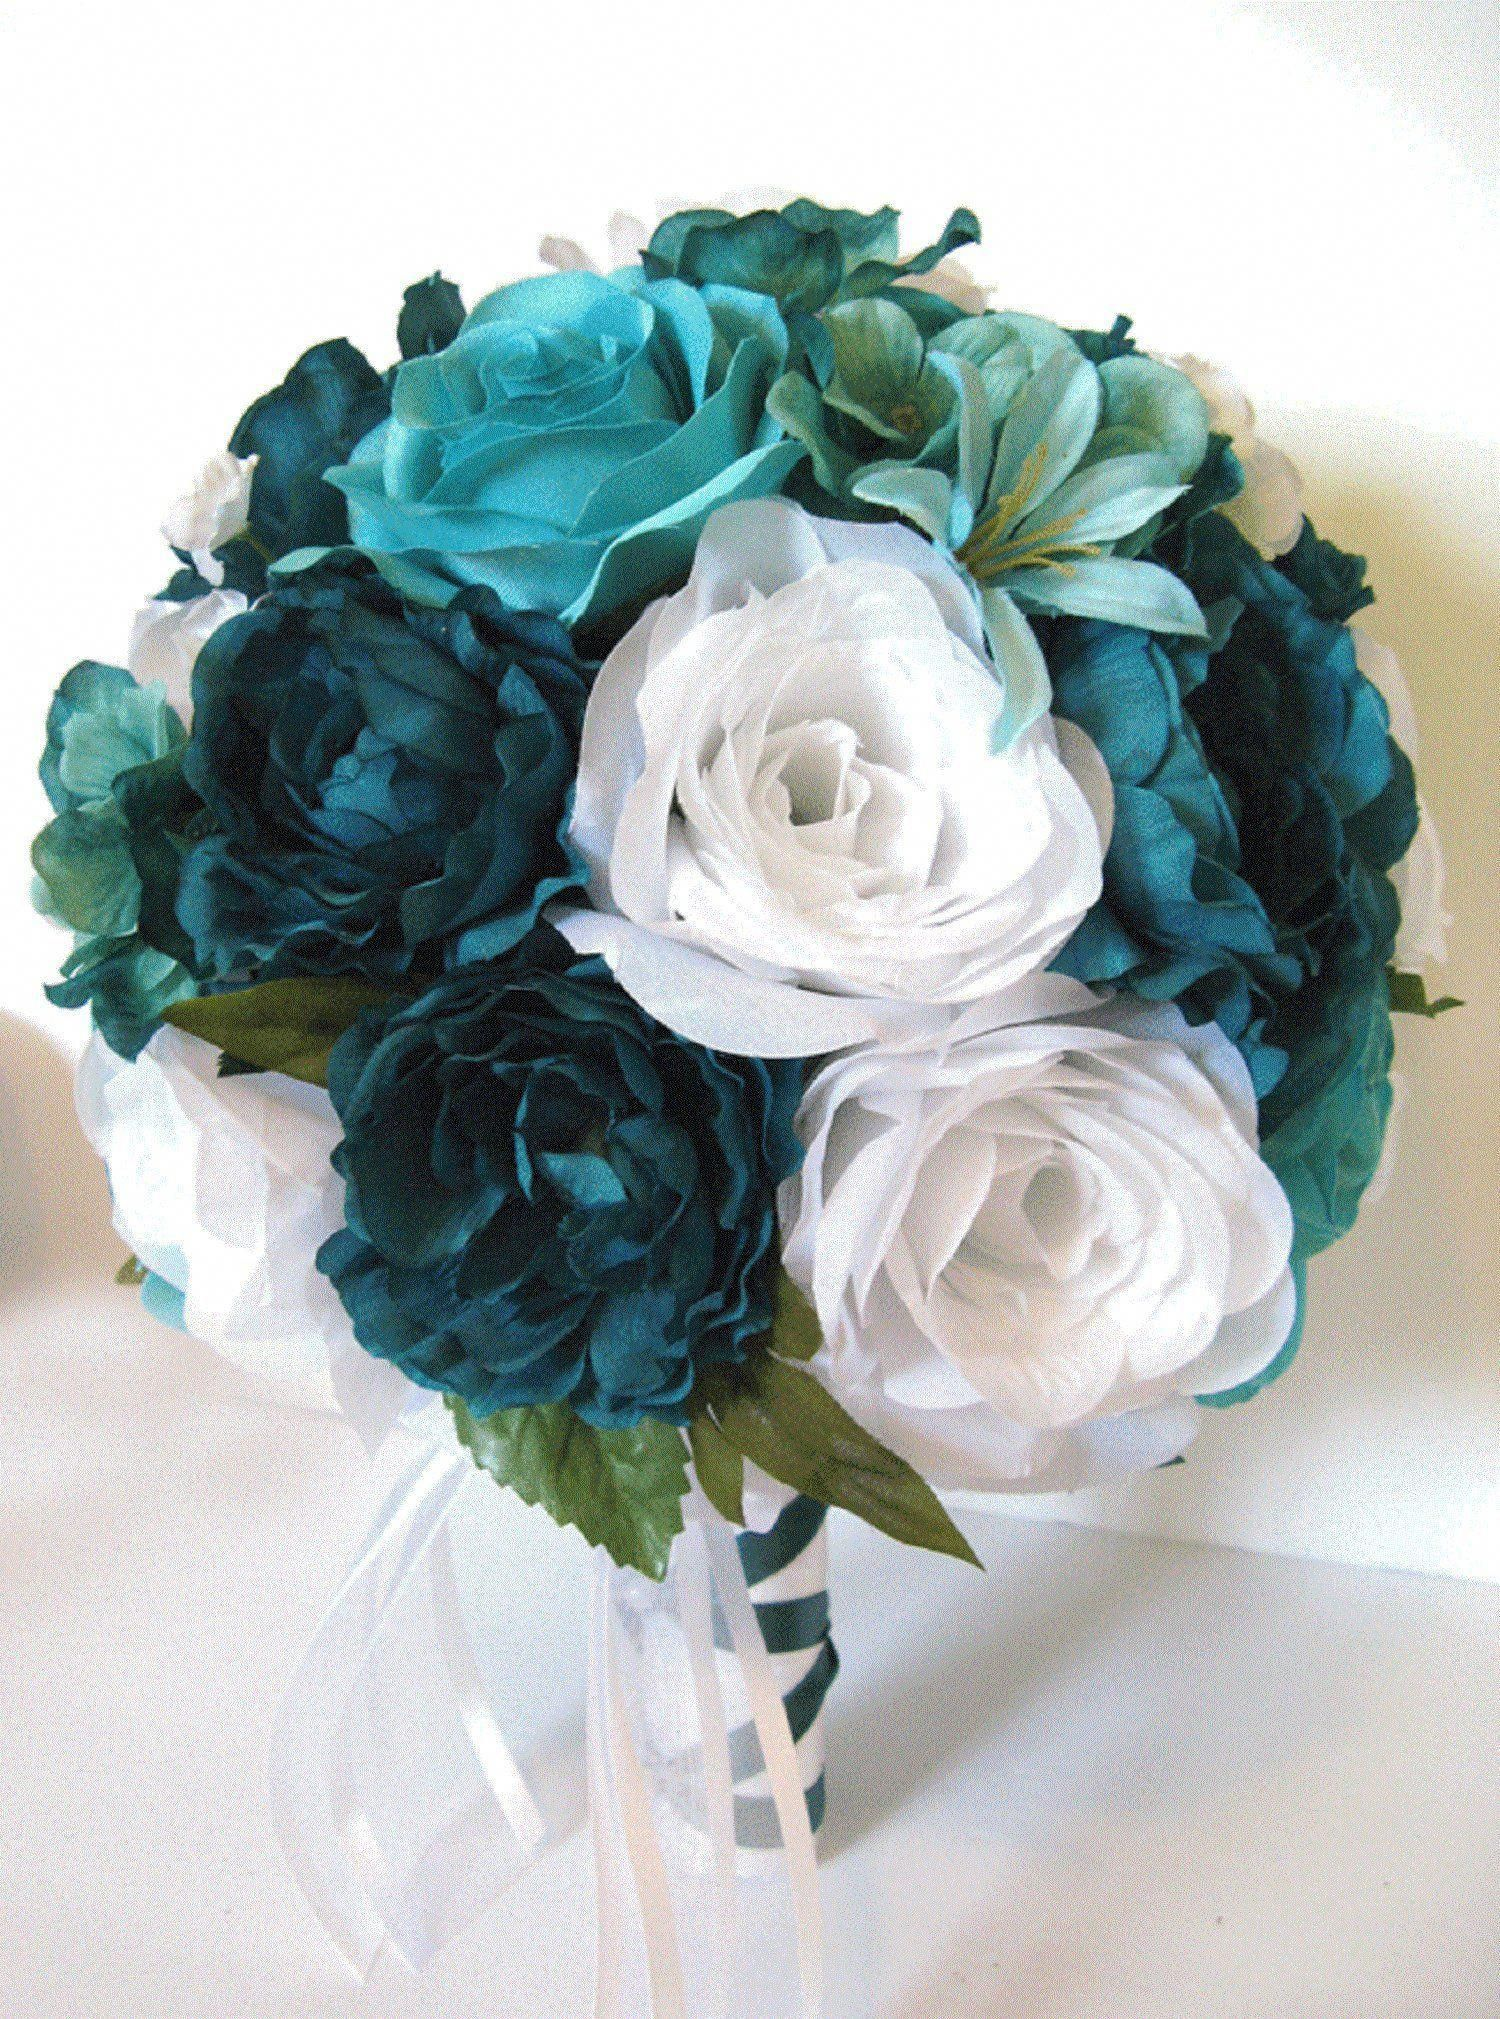 17 Piece Wedding Bouquet Set Bridal Bouquet Package Teal Turquoise Aqua Silk Flower Bouquet Wedding Flowers Bridesmaid Rosesanddreams In 2020 Flower Bouquet Wedding Bridesmaid Flowers Wedding Flower Arrangements